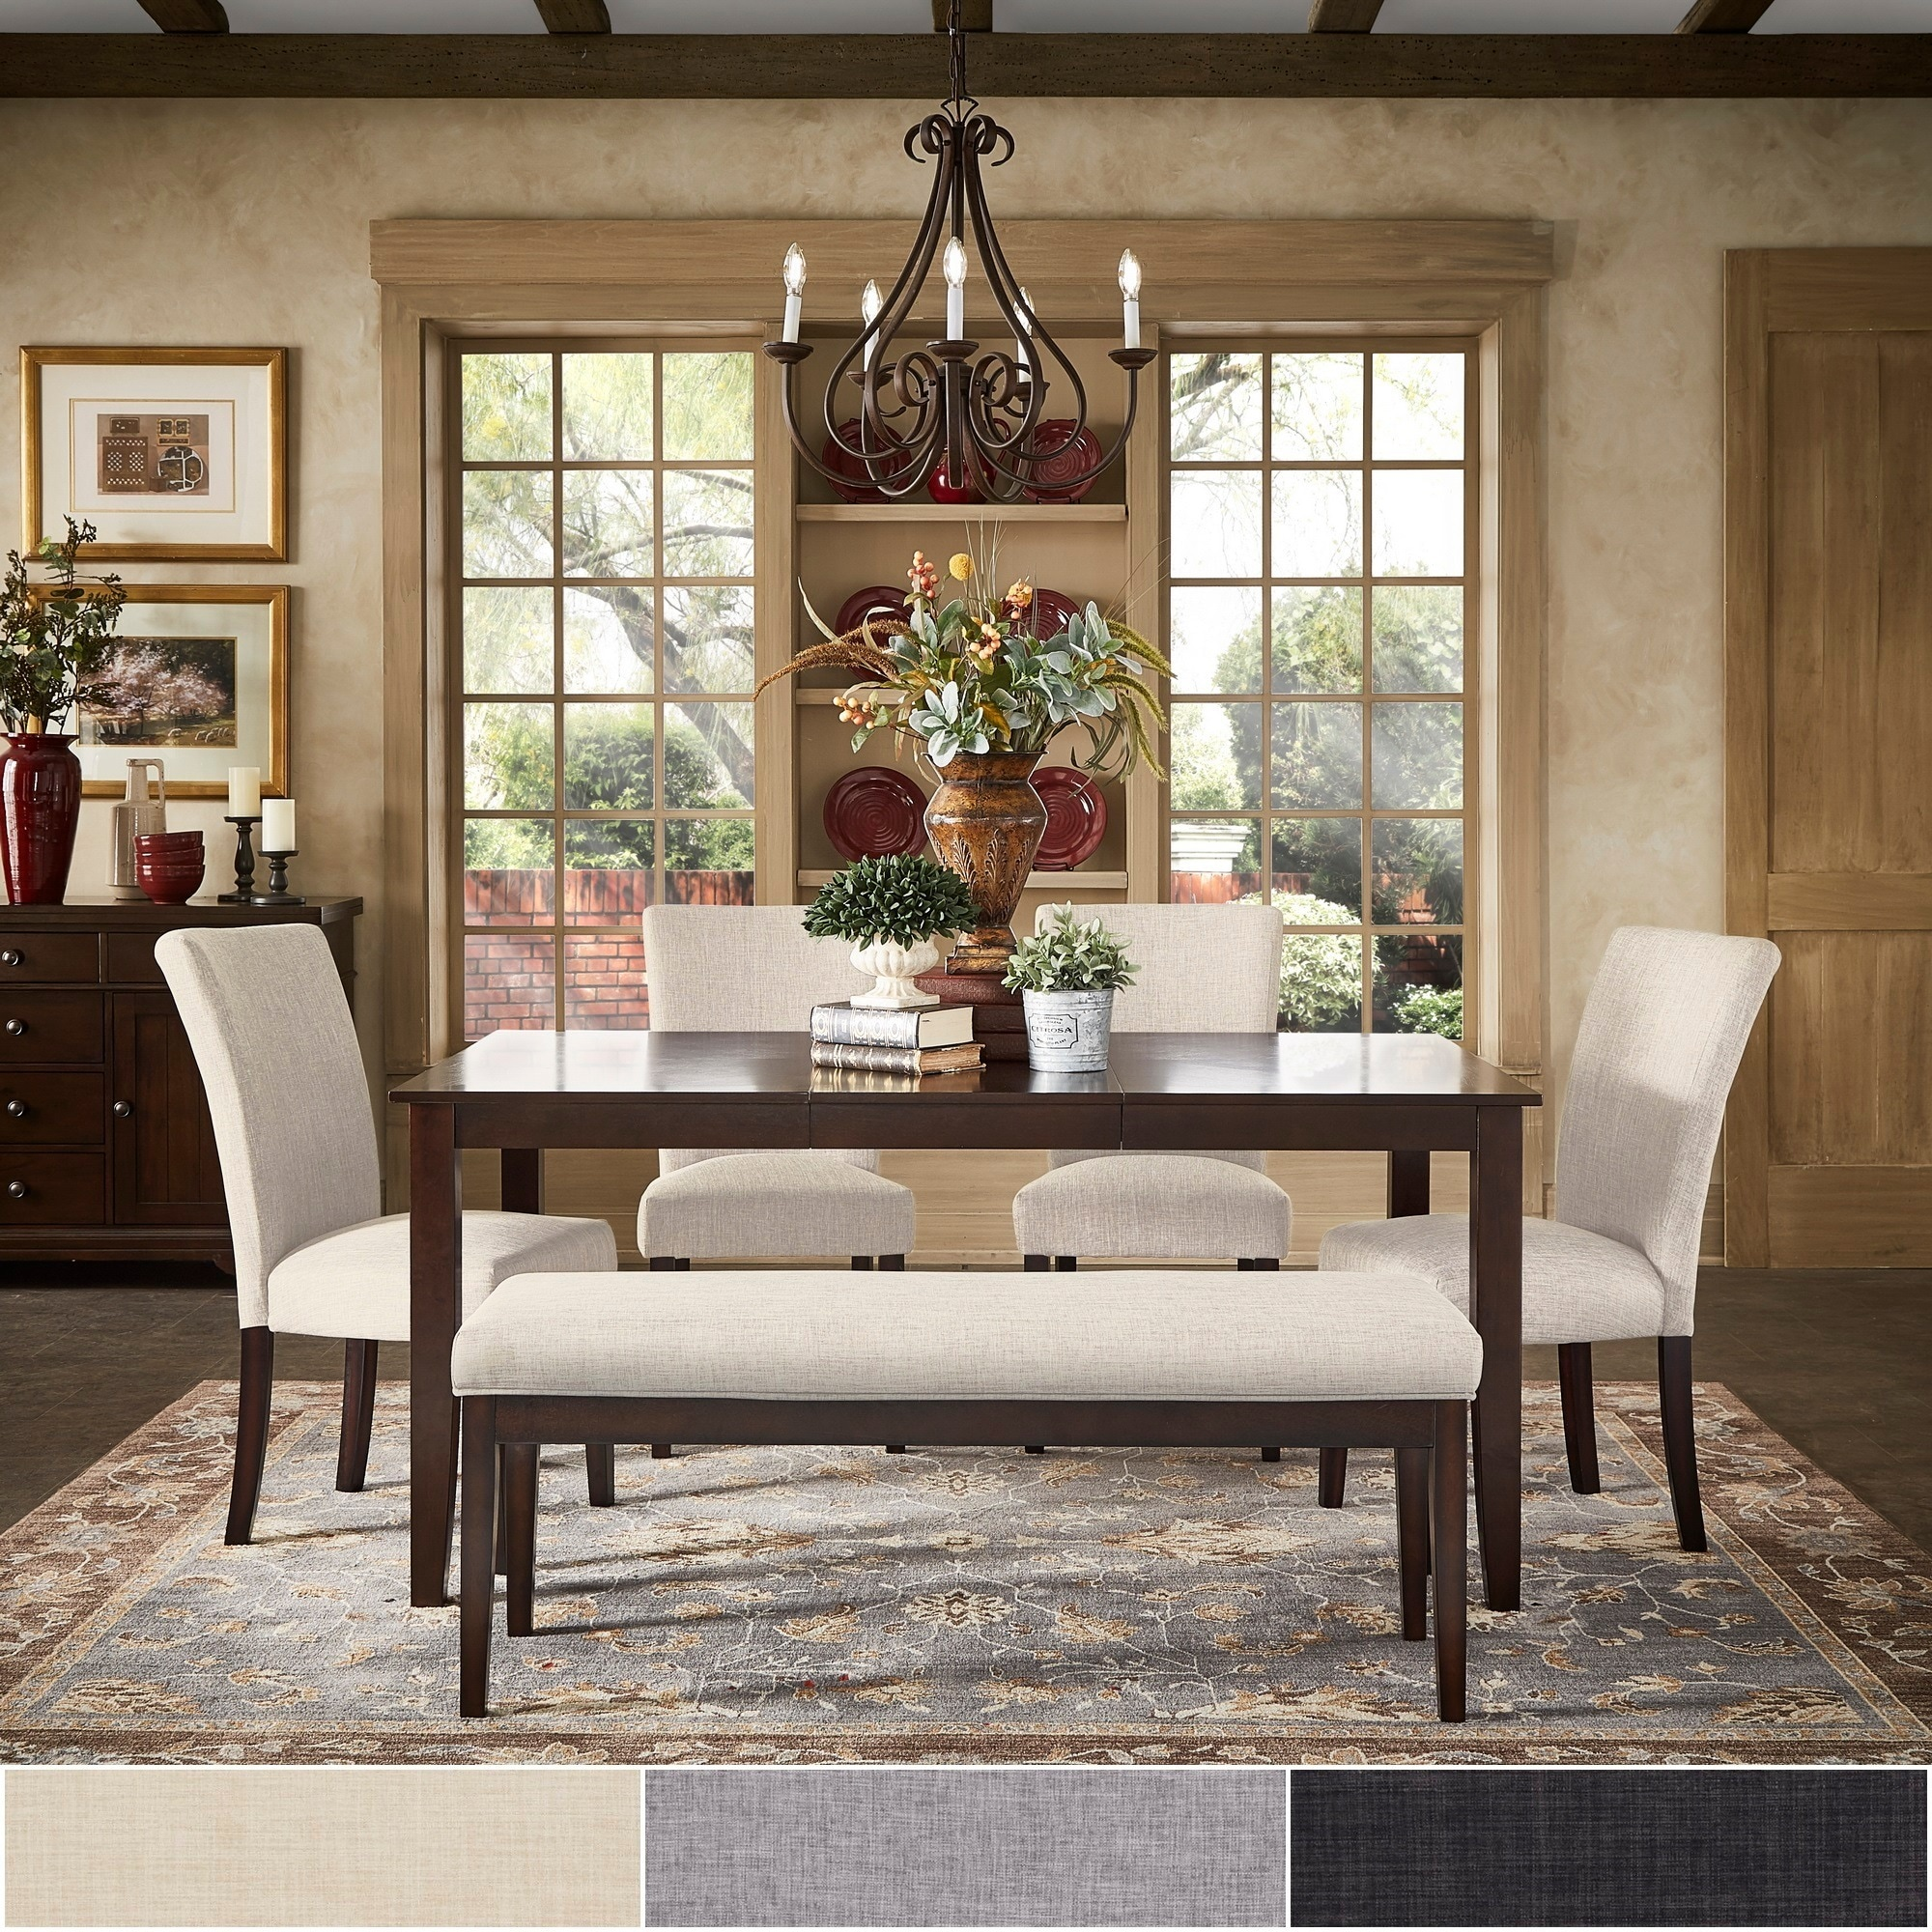 Extending Dining Table Pranzo Rectangular 66 Inch Extending Dining Table Set By Inspire Q Classic